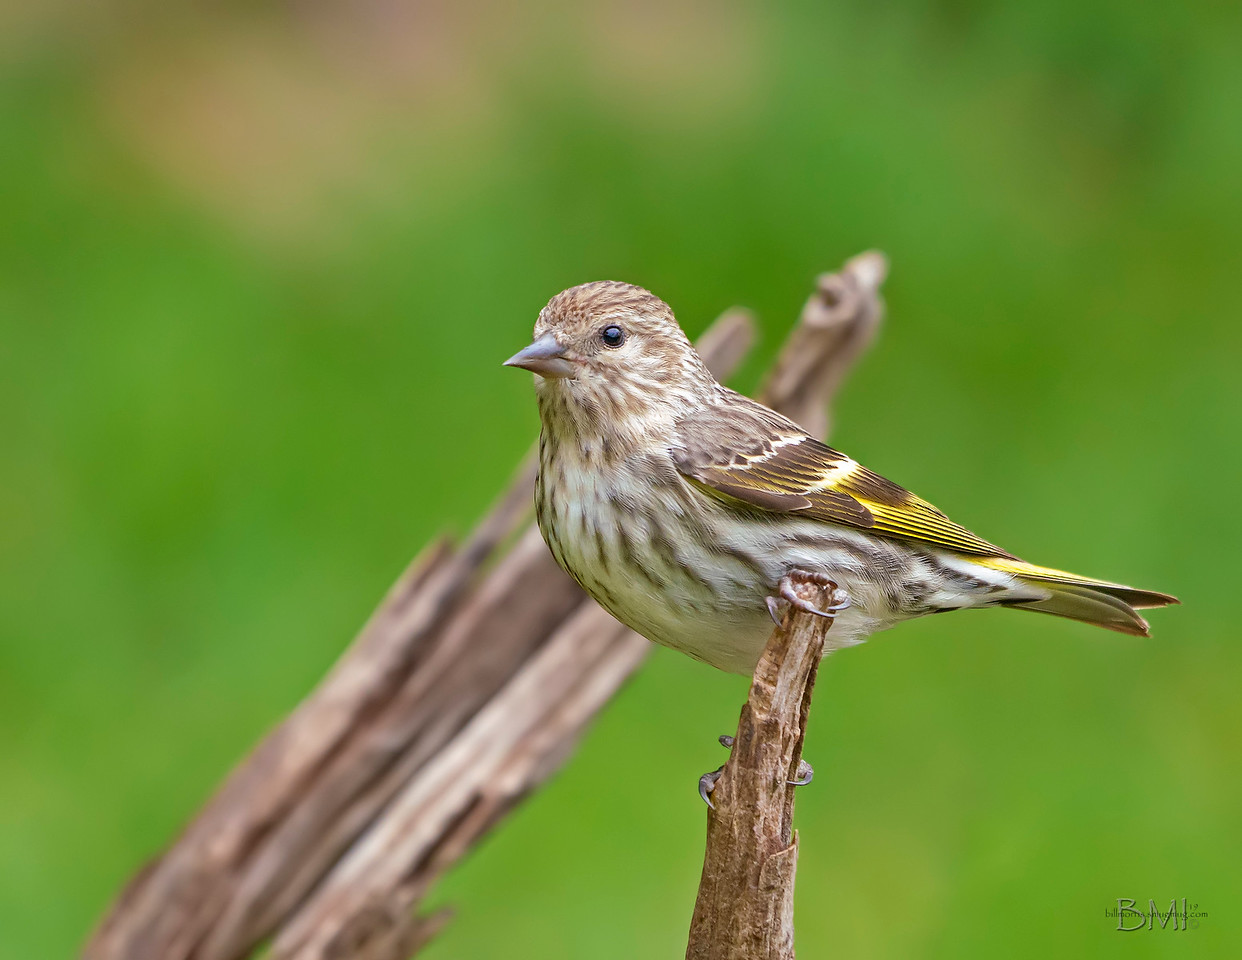 IMAGE: https://photos.smugmug.com/Beautyinthetreesandintheair/Birds/i-cDtPngt/0/923de6d1/X2/Pine%20siskin%204-13-19-4-X2.jpg